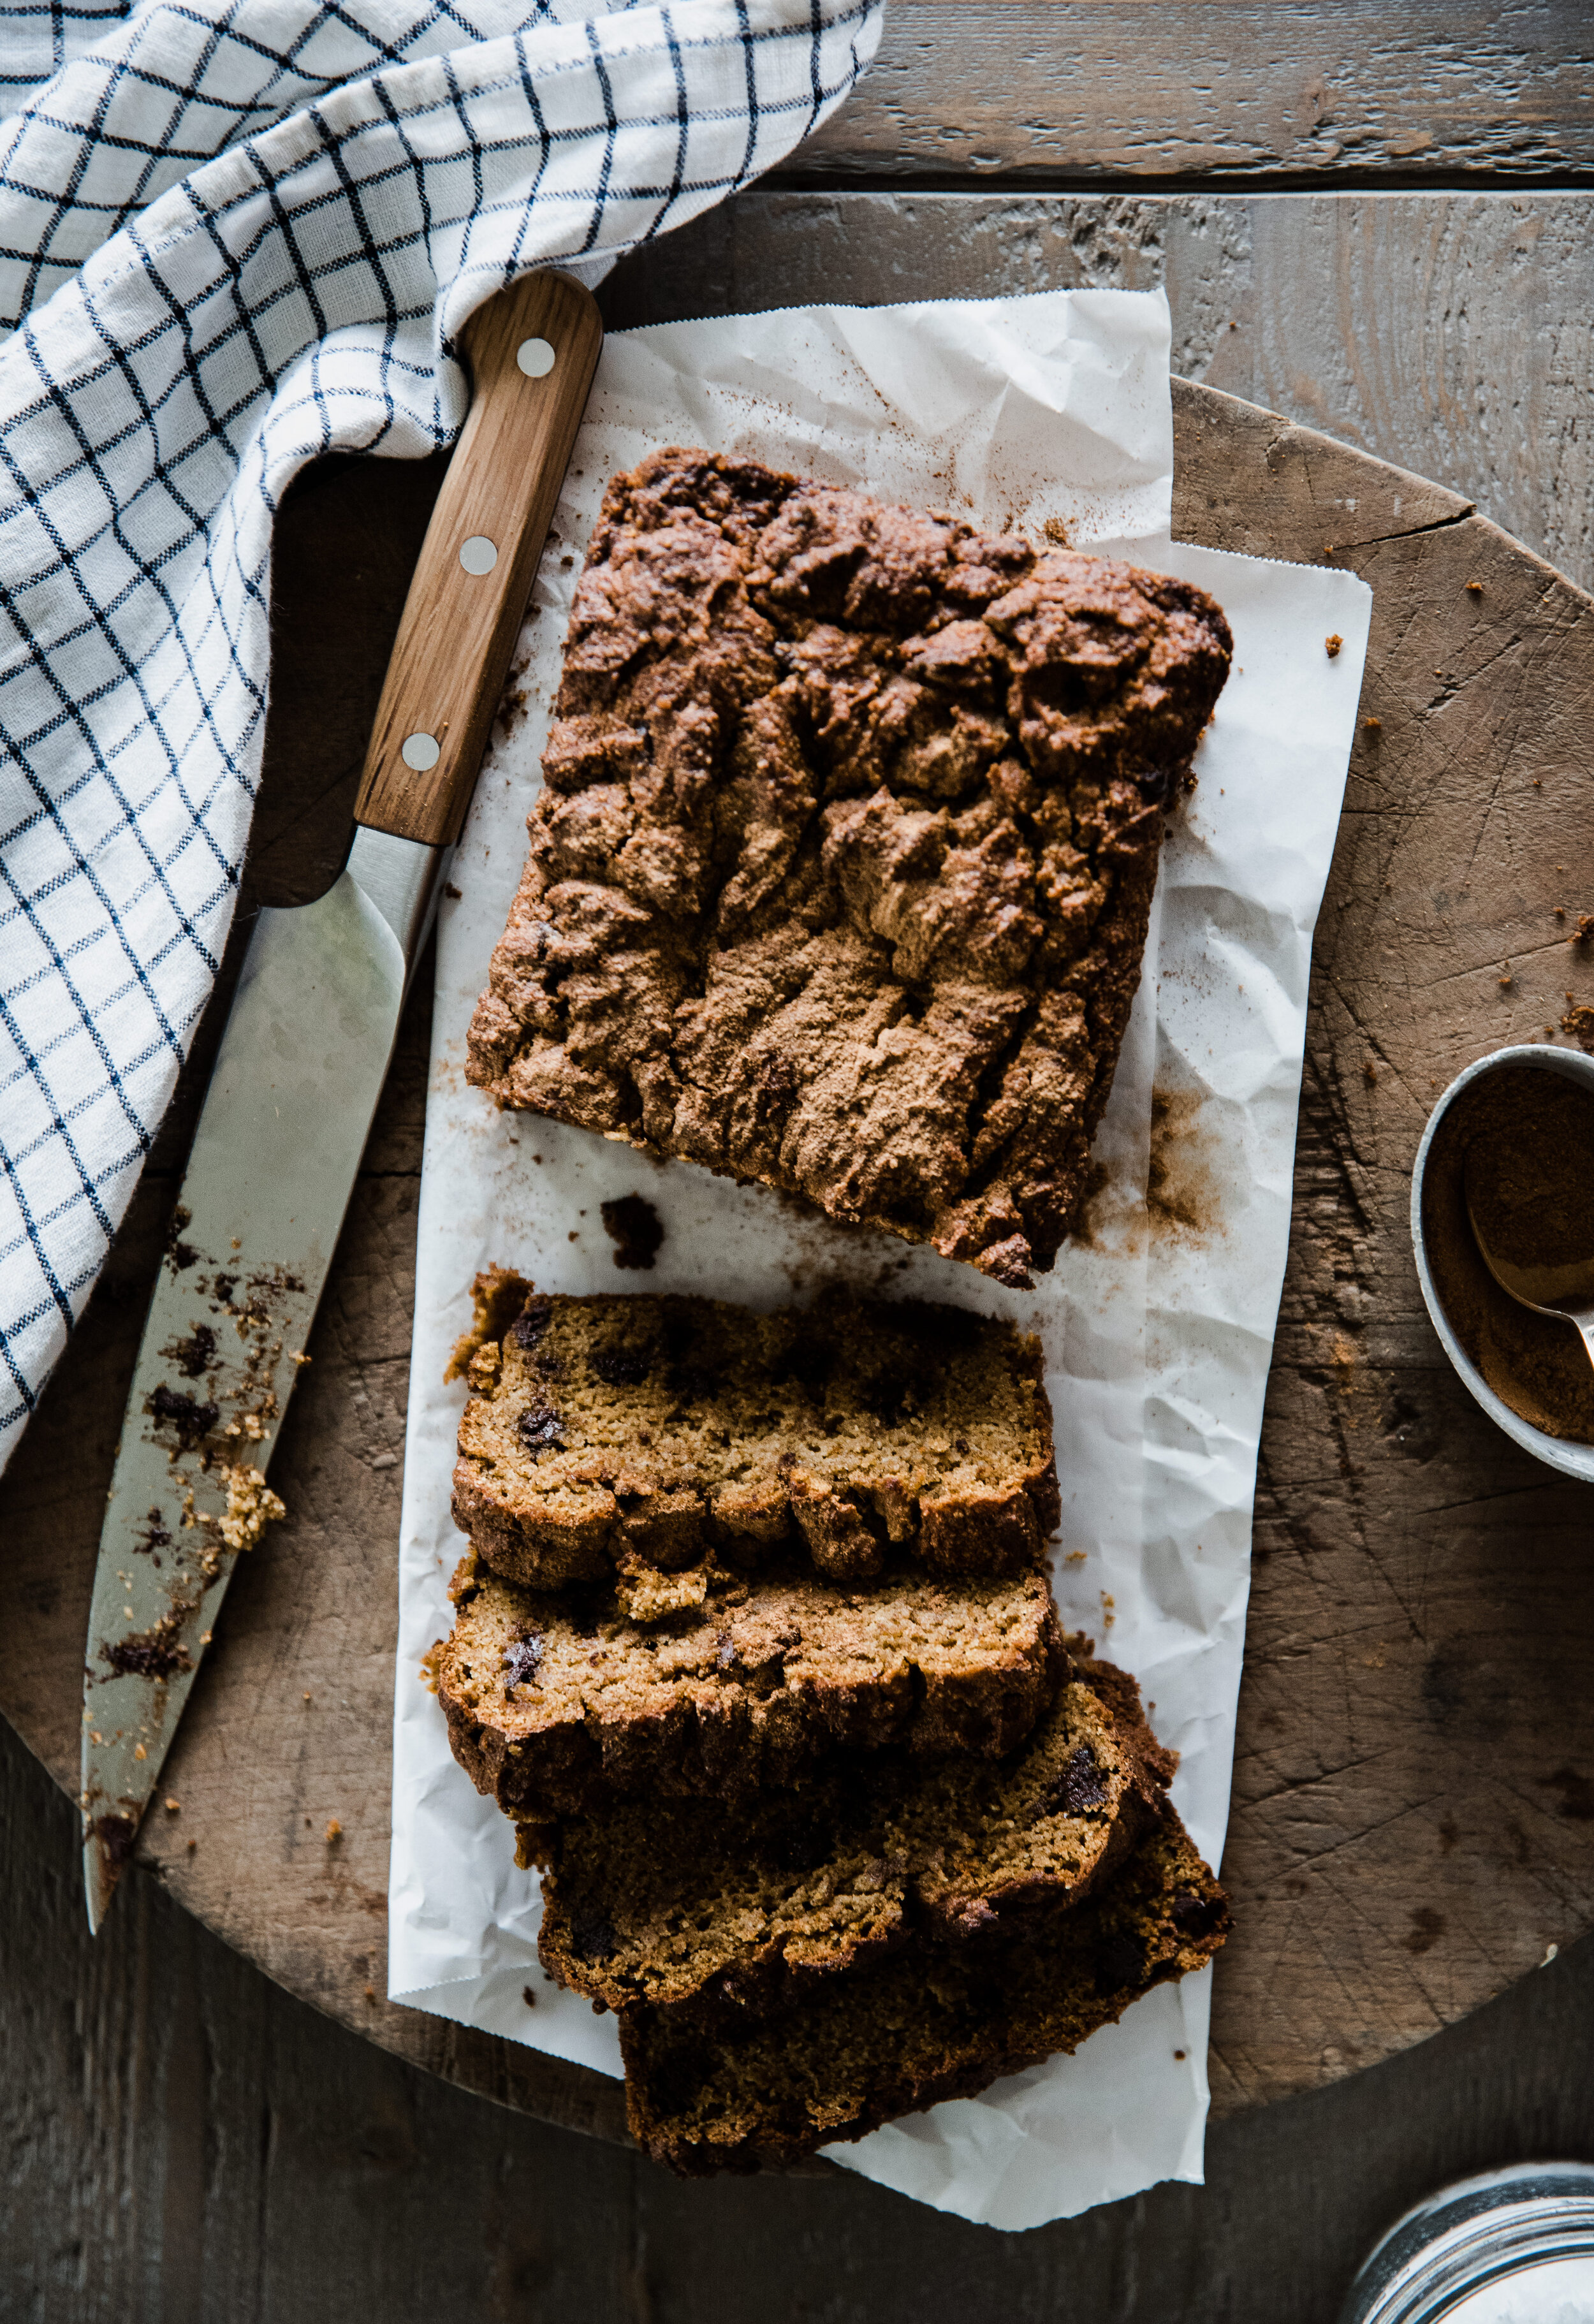 Delicious healthy pumpkin bread baked with chocolate chips and pumpkin pie spice! Low sugar and grain free pumpkin bread recipe. #pumpkinbread #pumpkinspice #pumpkinrecipe